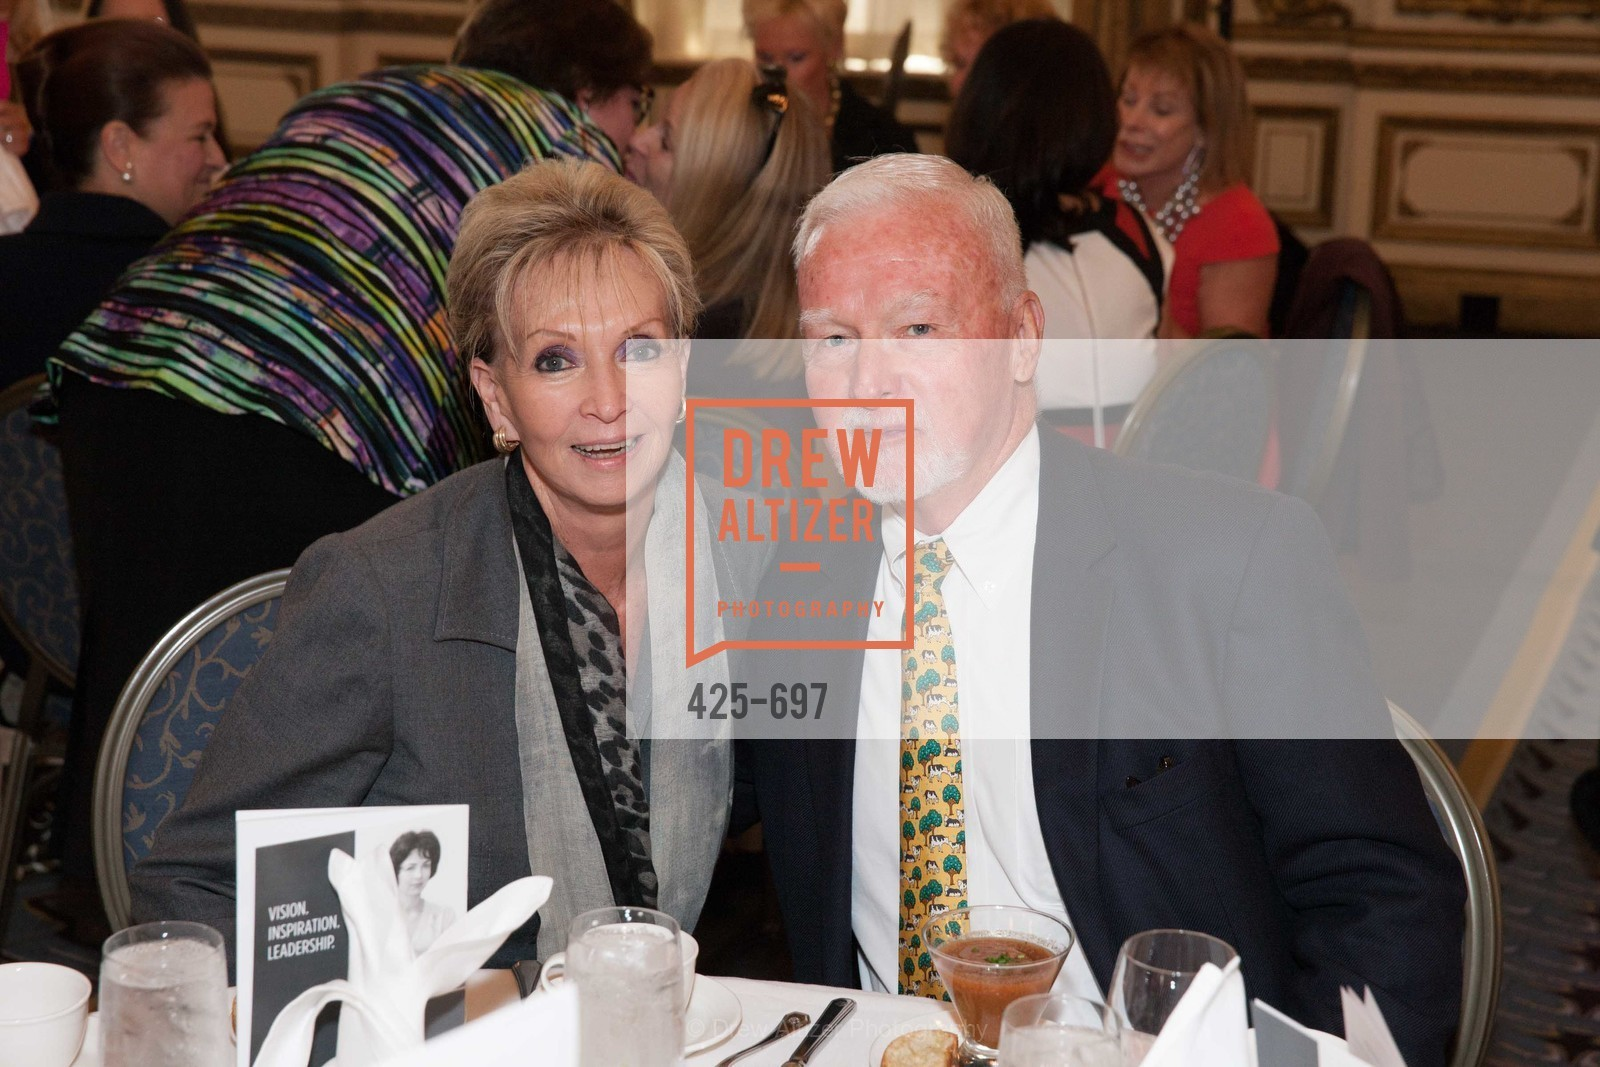 Sallie Huntting, Sam Leftwich, JUNIOR LEAGUE OF SAN FRANCISCO's WATCH Luncheon, US, May 5th, 2015,Drew Altizer, Drew Altizer Photography, full-service agency, private events, San Francisco photographer, photographer california